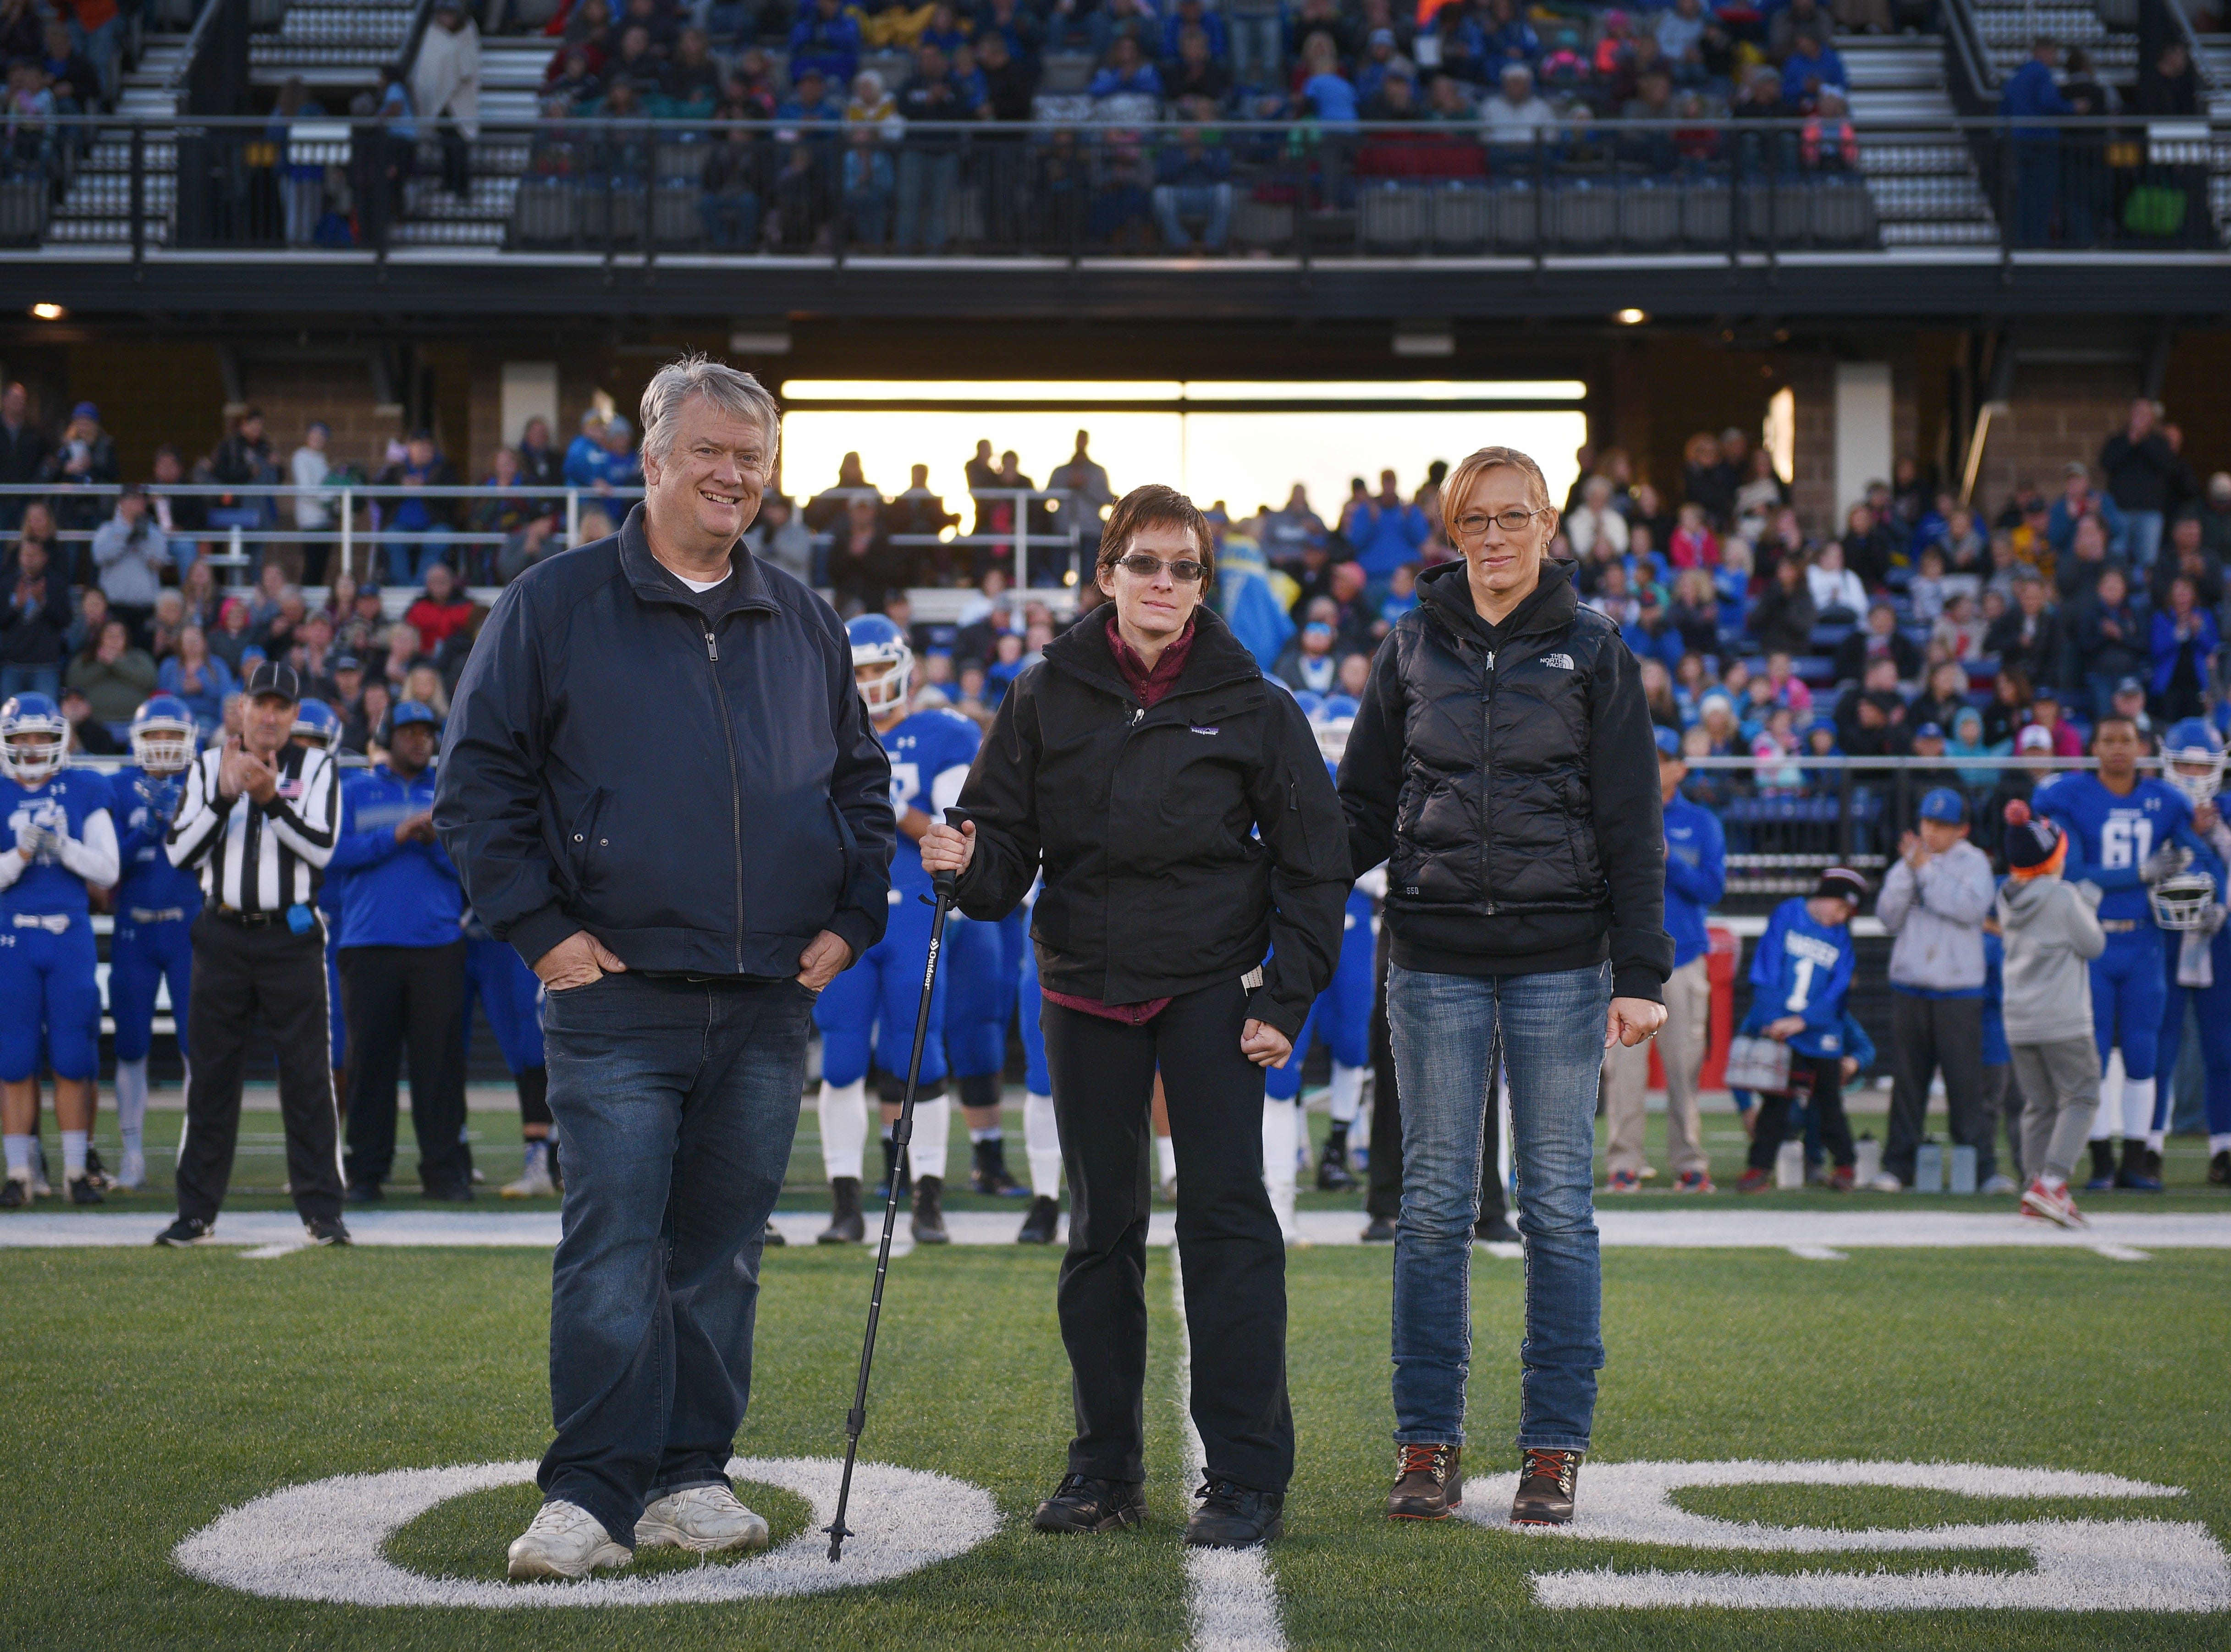 Ashley Van Hemert and her parents Linda and Lyle stand on the 50 yard line for the coin toss before the Sioux Falls Christian game, Friday Sept. 28, at Bob Young Field University Of Sioux Falls Stadium.